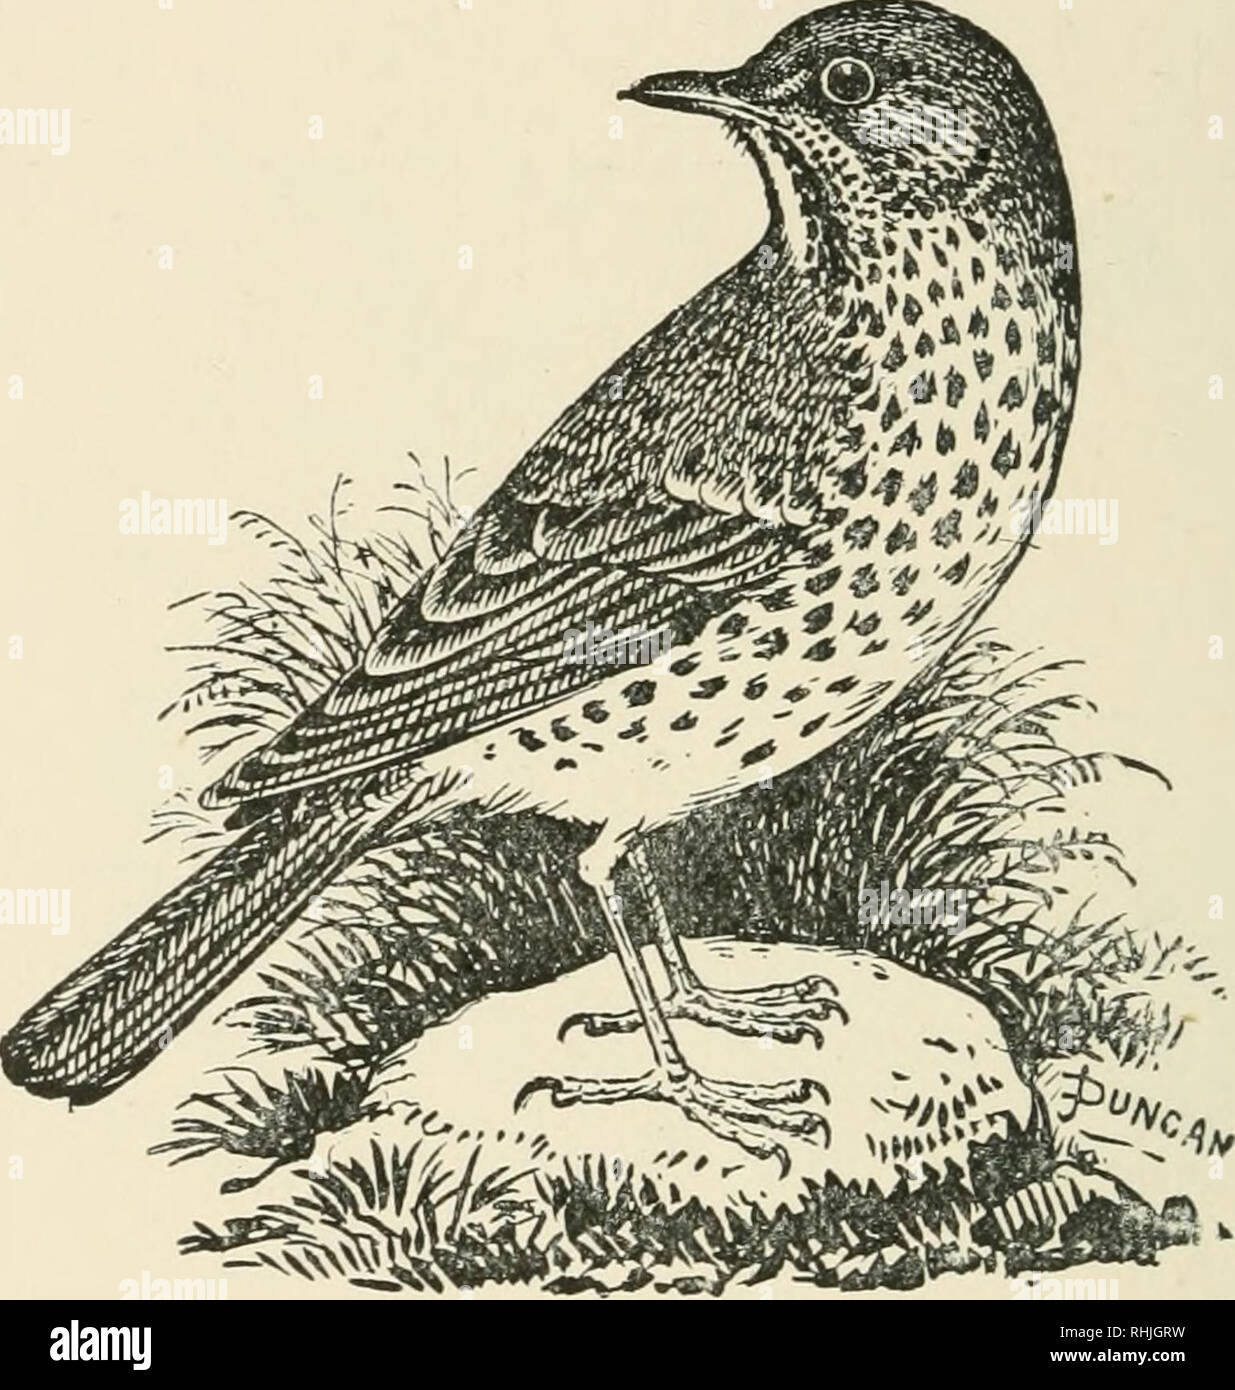 . Birds of the British Isles. Birds -- Great Britain; Birds -- Ireland. I04 BIRDS OF THE BRITISH ISLES. Song ?Cbru6b,. The Song Thrush {Turdus vinsiciis^ Linnaeus) is generally distributed throughout the British Isles. It is more or less migratory in its habits, leaving in the late autumn and returning in early spring. The adult is dark olive- brown on the upper parts; eye-stripe, buff; quills and wing-coverts, margined with deep yellowish-brown, and there are buff tips to some of the feathers; under parts, buff, shading into white on belly; sides of throat, chest, and remainder of body, profu Stock Photo